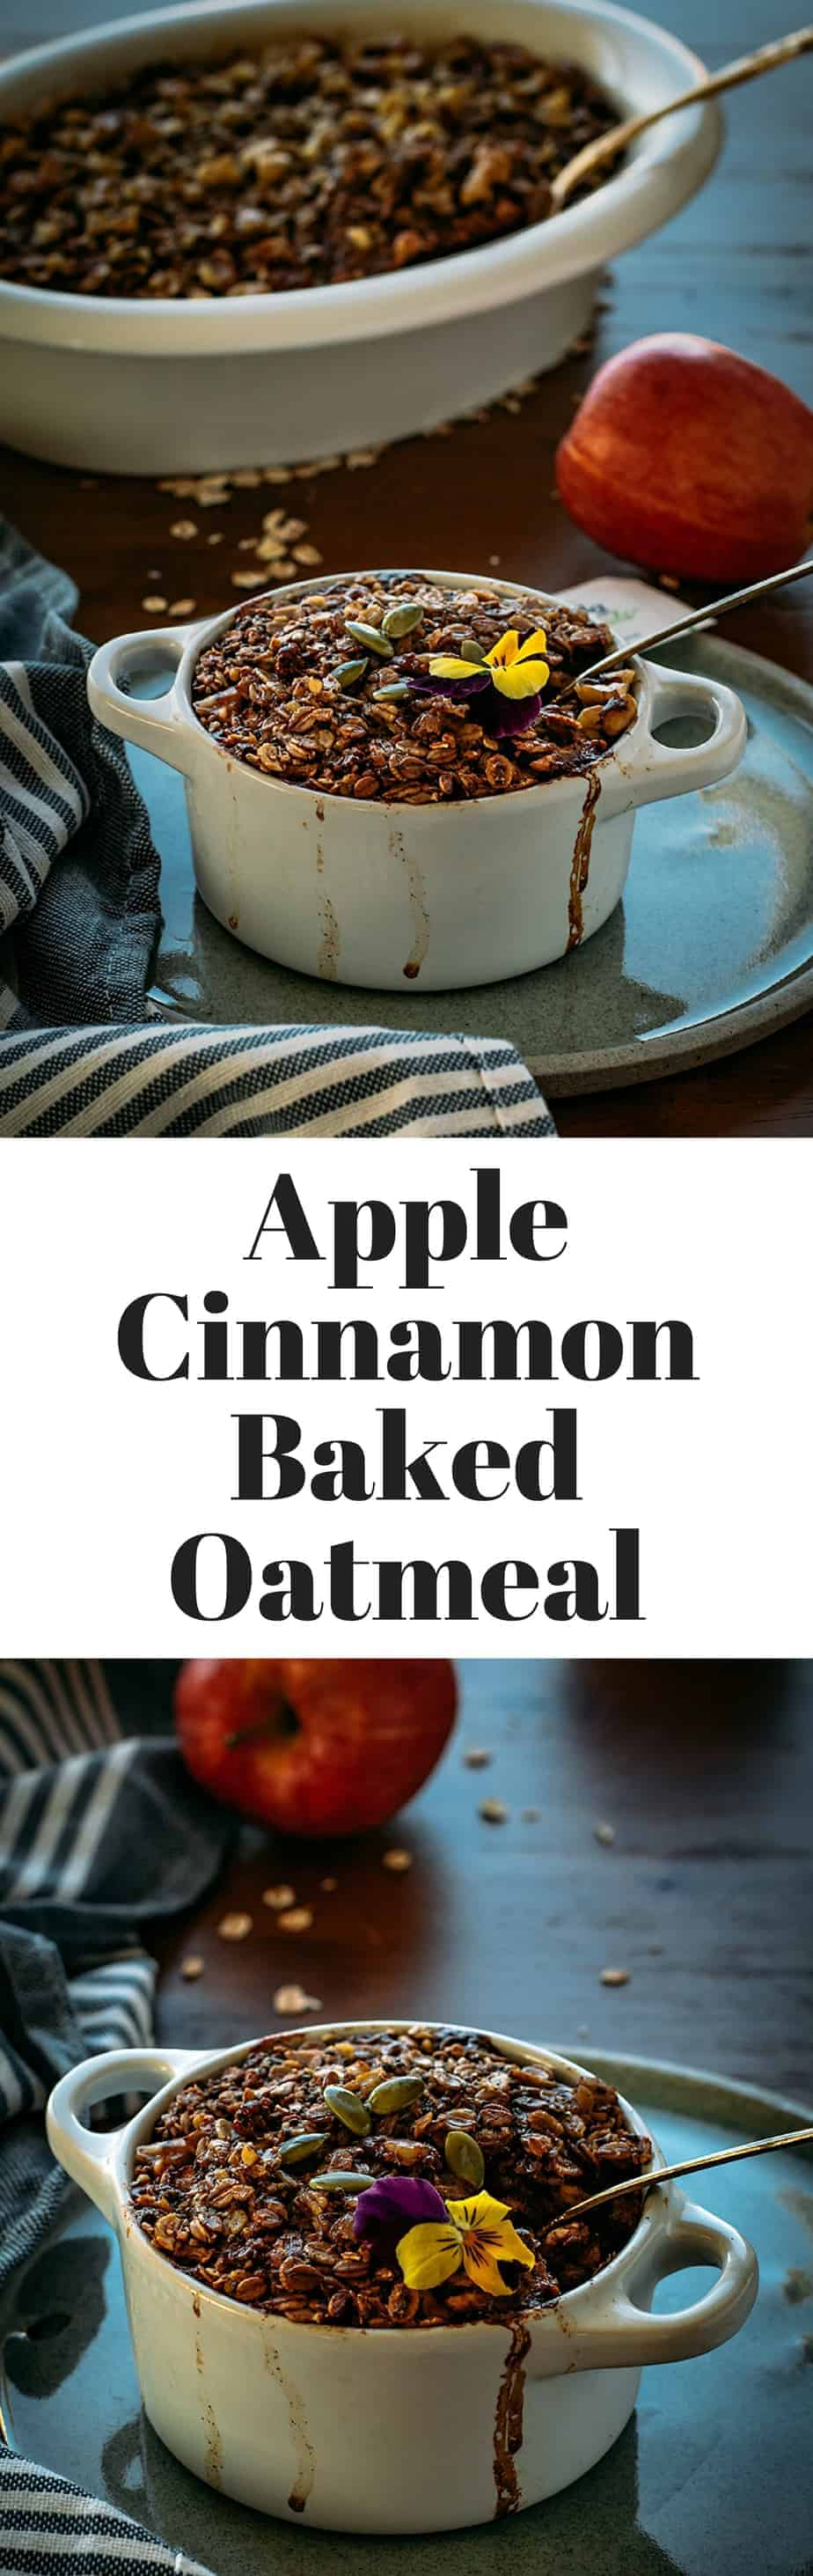 Apple Cinnamon Baked Oatmeal with no sugar added.